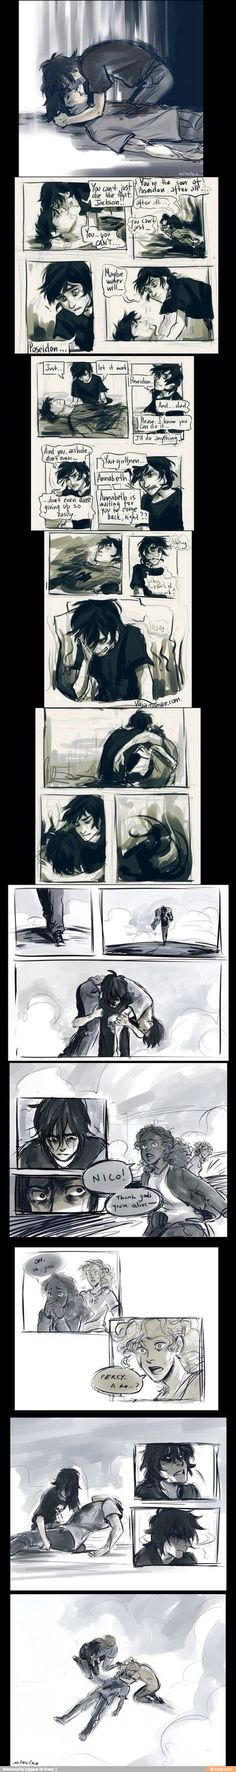 Percy Jackson comic...I think my heart was ripped out of my chest